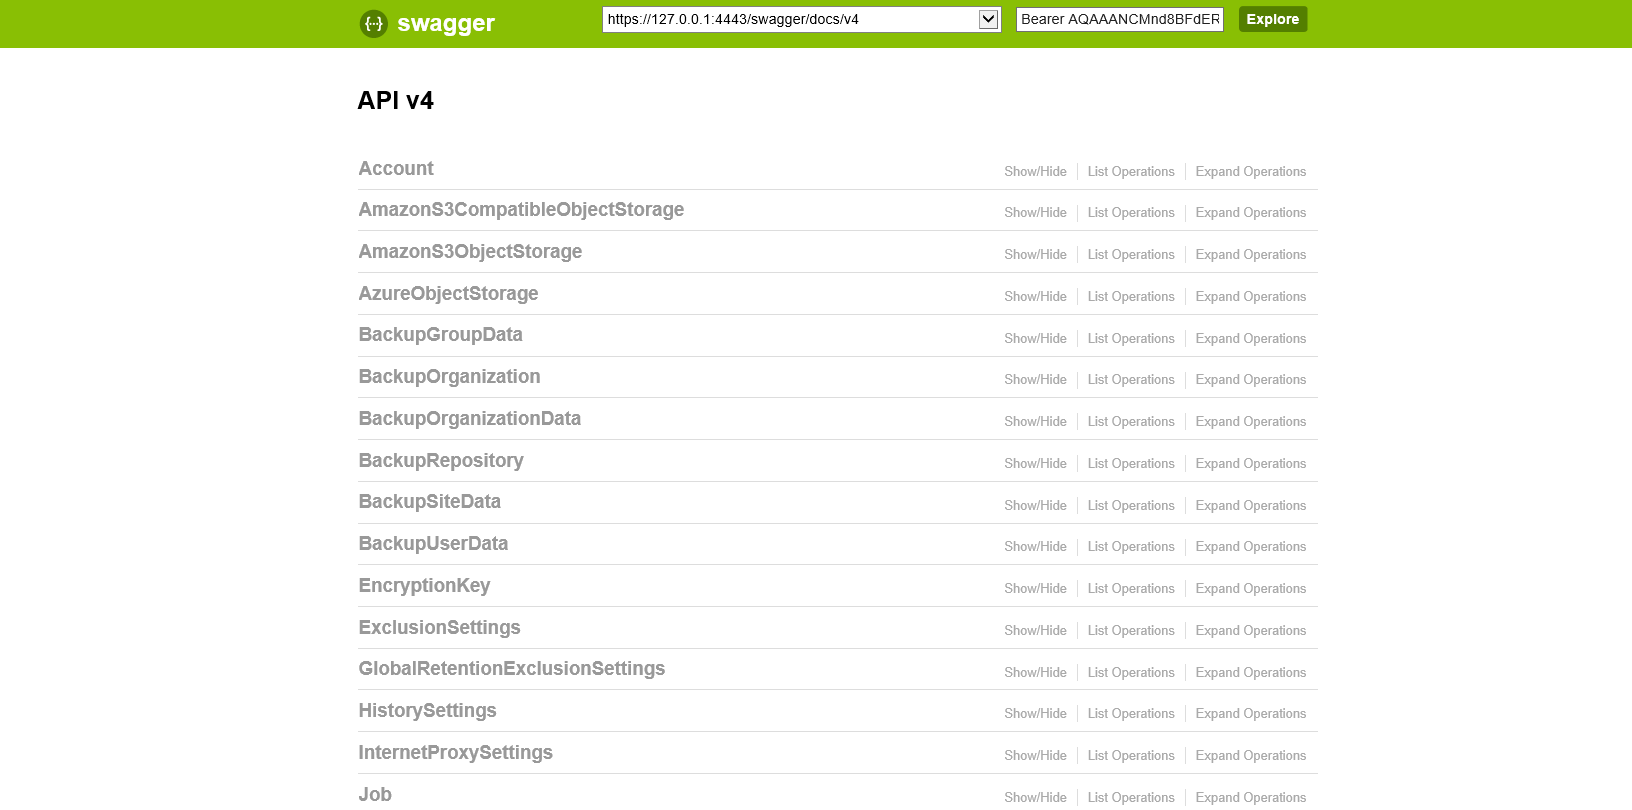 Evaluation with Swagger UI - Veeam Backup for Microsoft